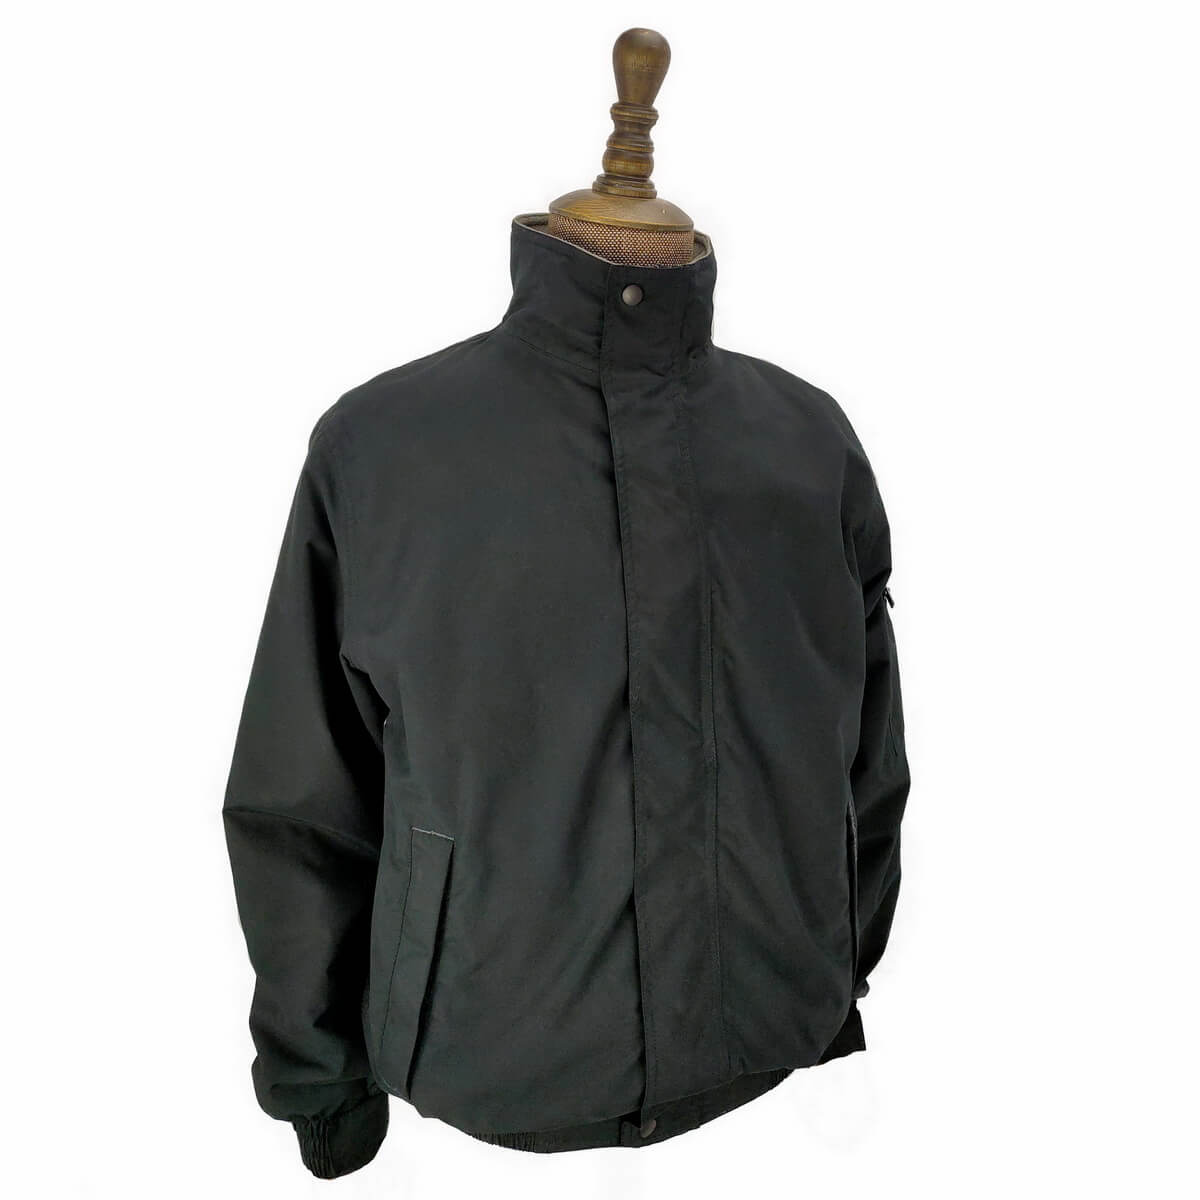 Men's worker jacket